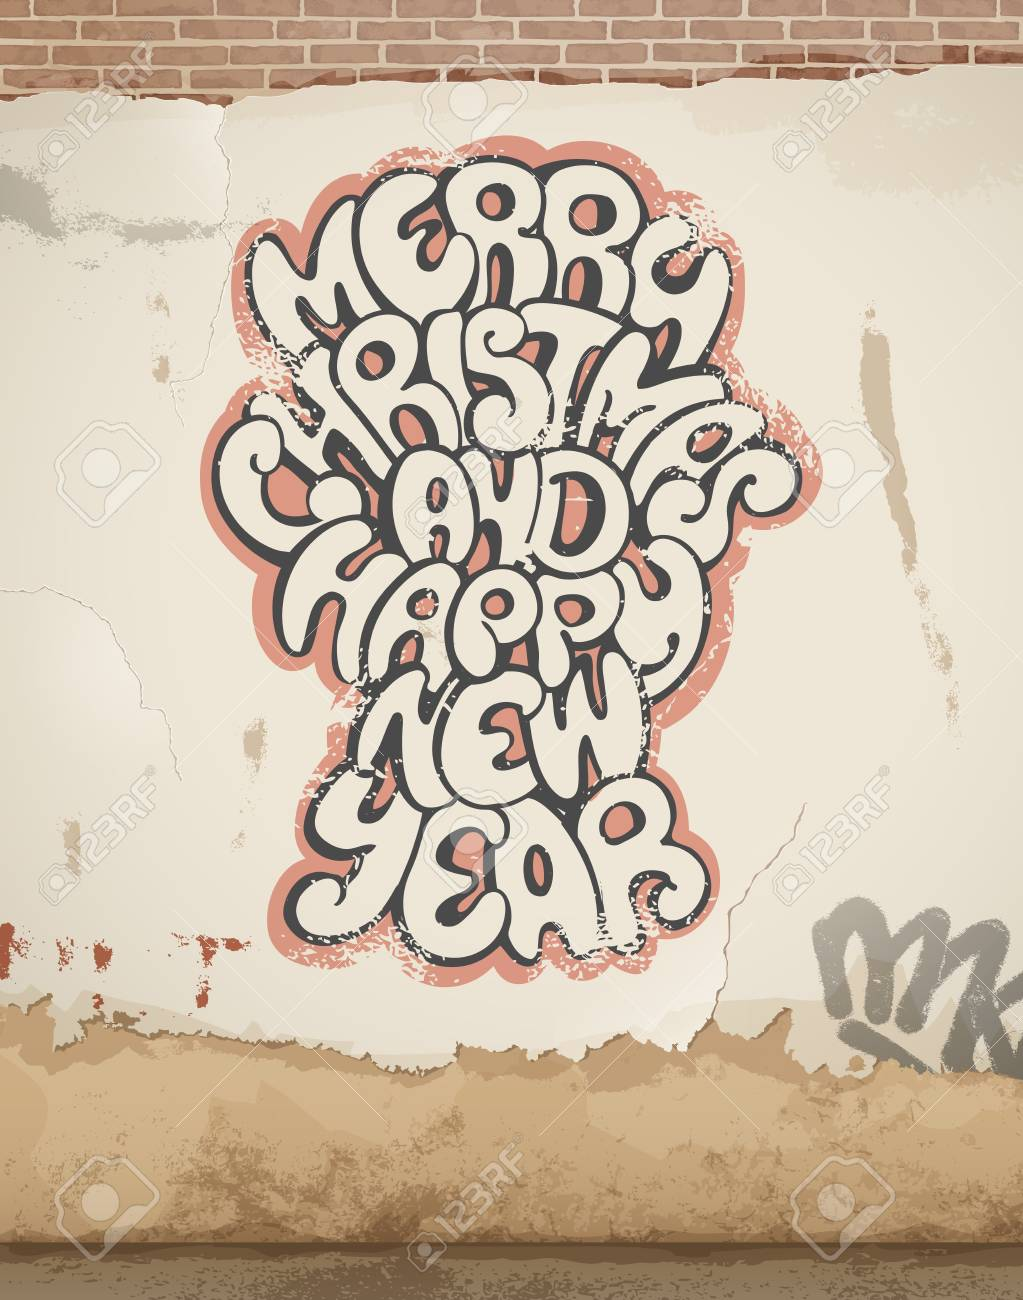 Christmas greetings spray painted on old wall eps 10 royalty free christmas greetings spray painted on old wall eps 10 stock vector 24168004 m4hsunfo